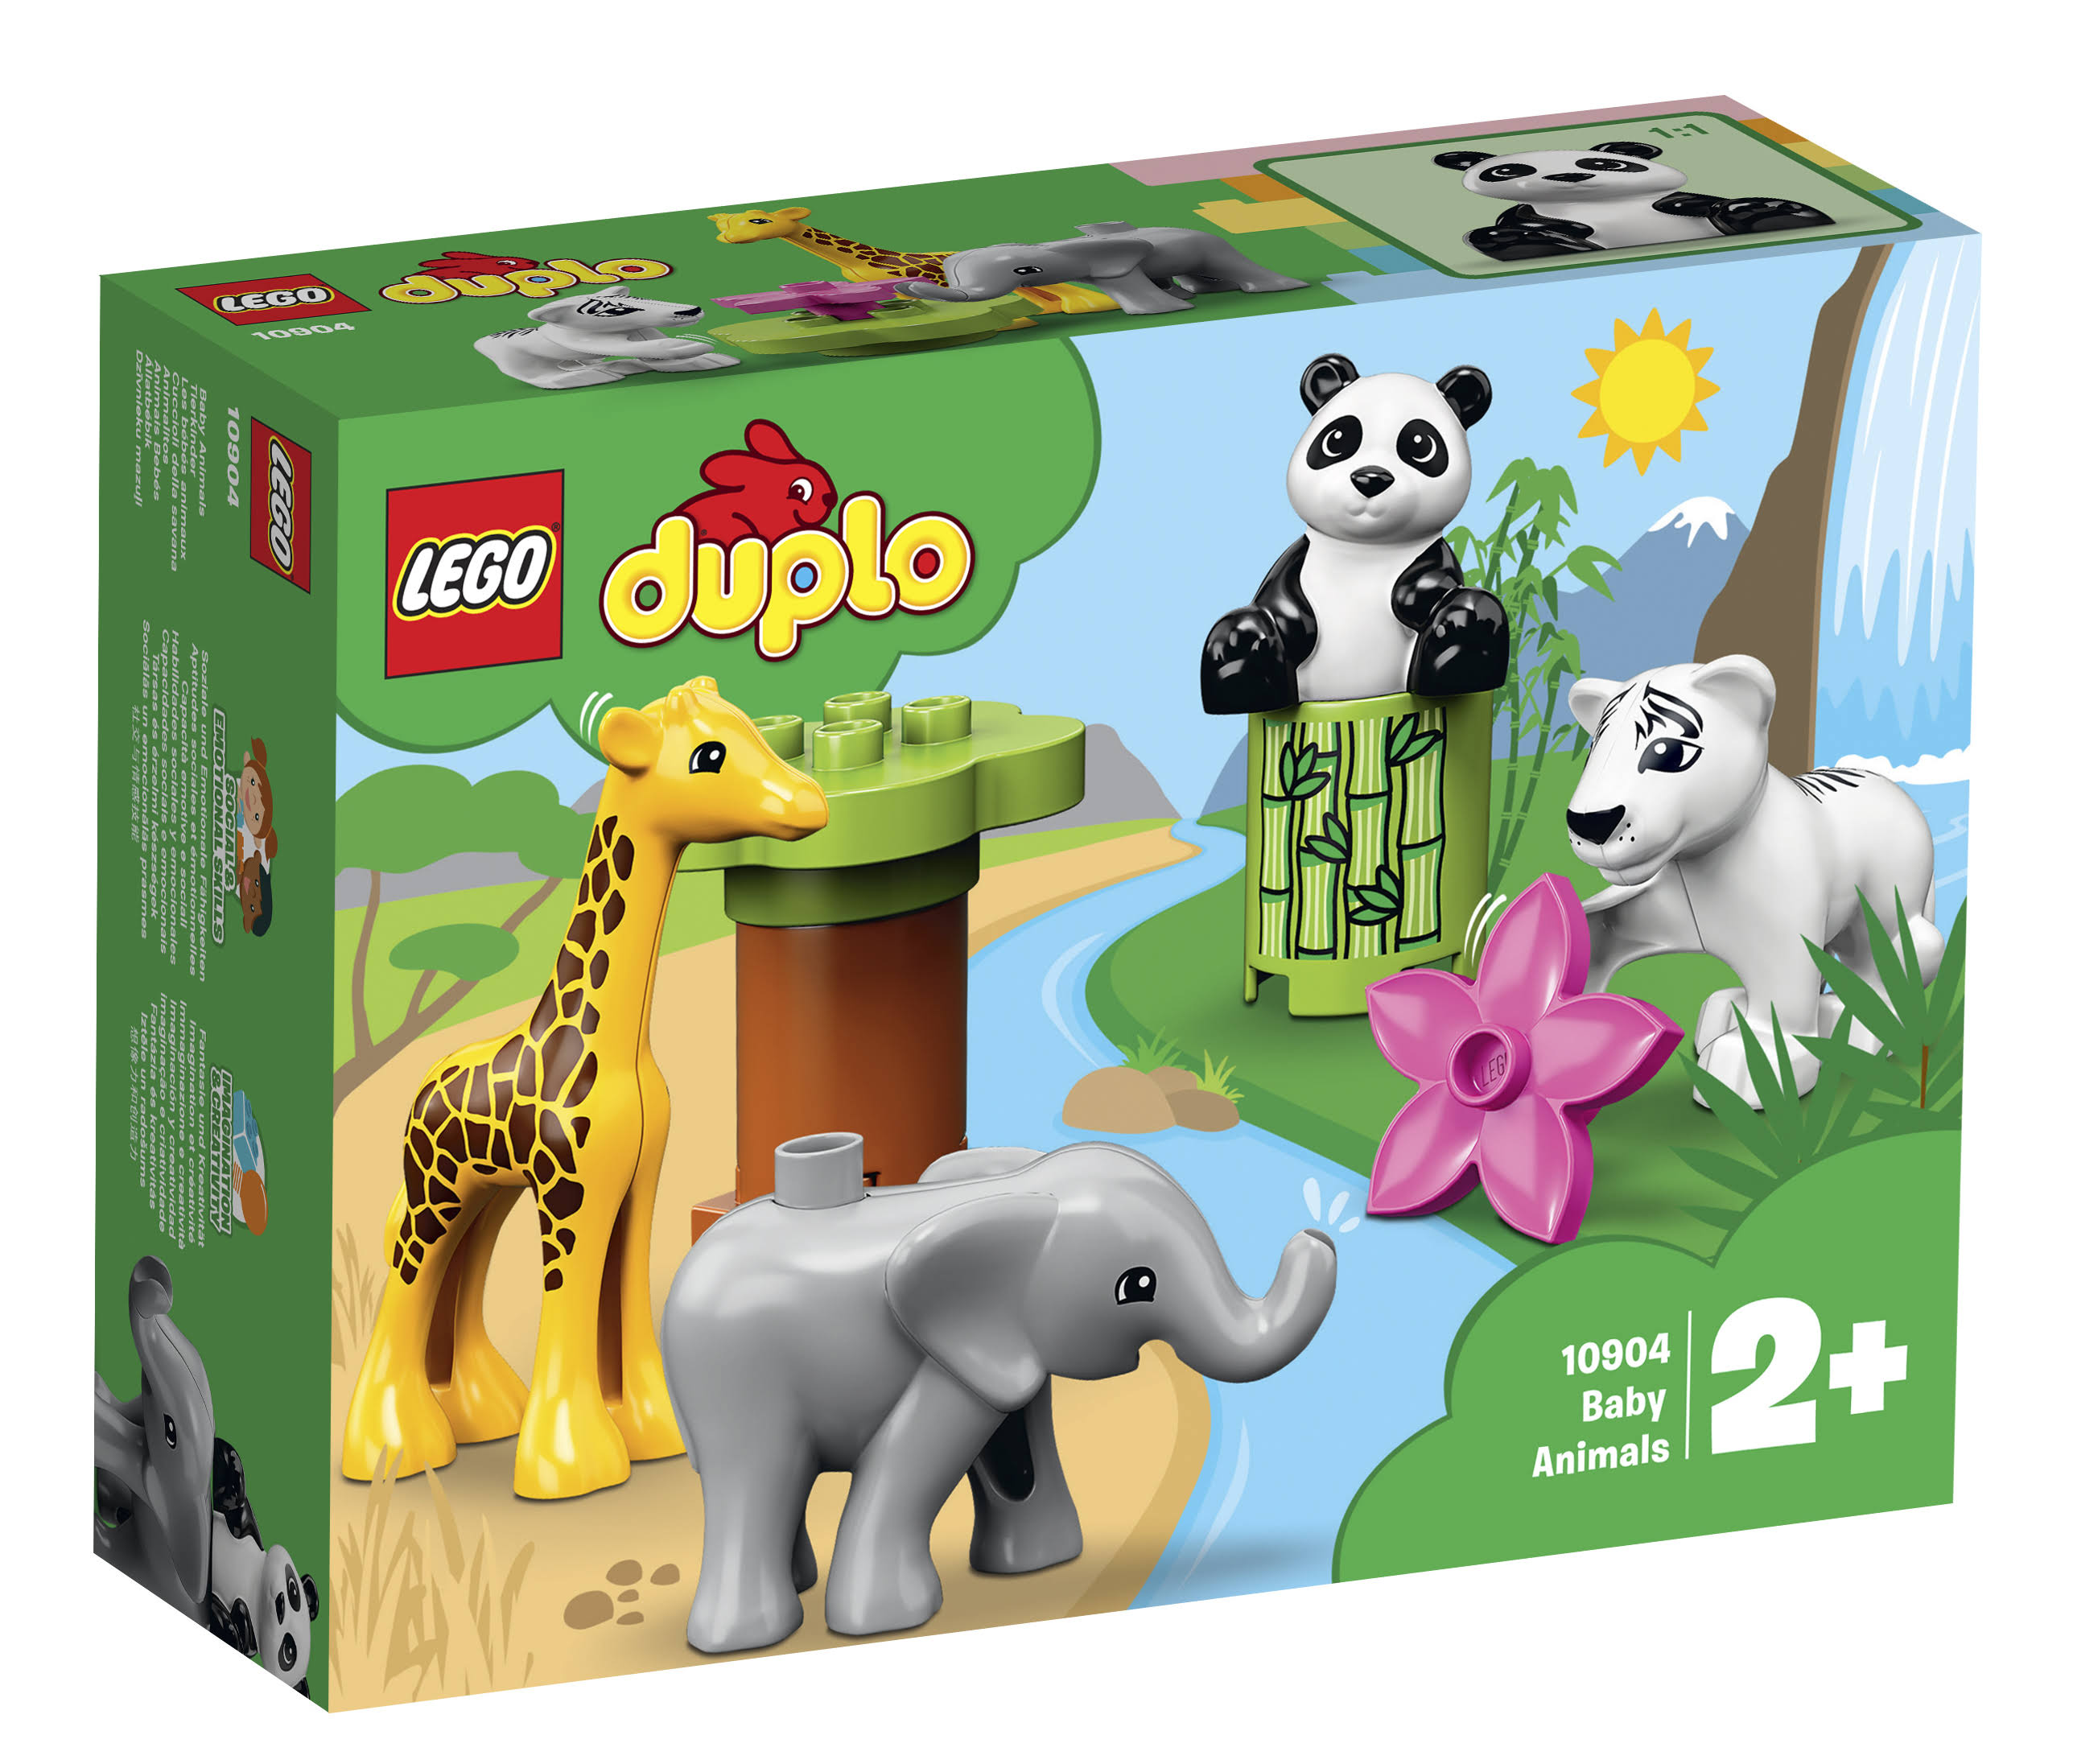 Lego Baby Animals Building Kit - 9pcs